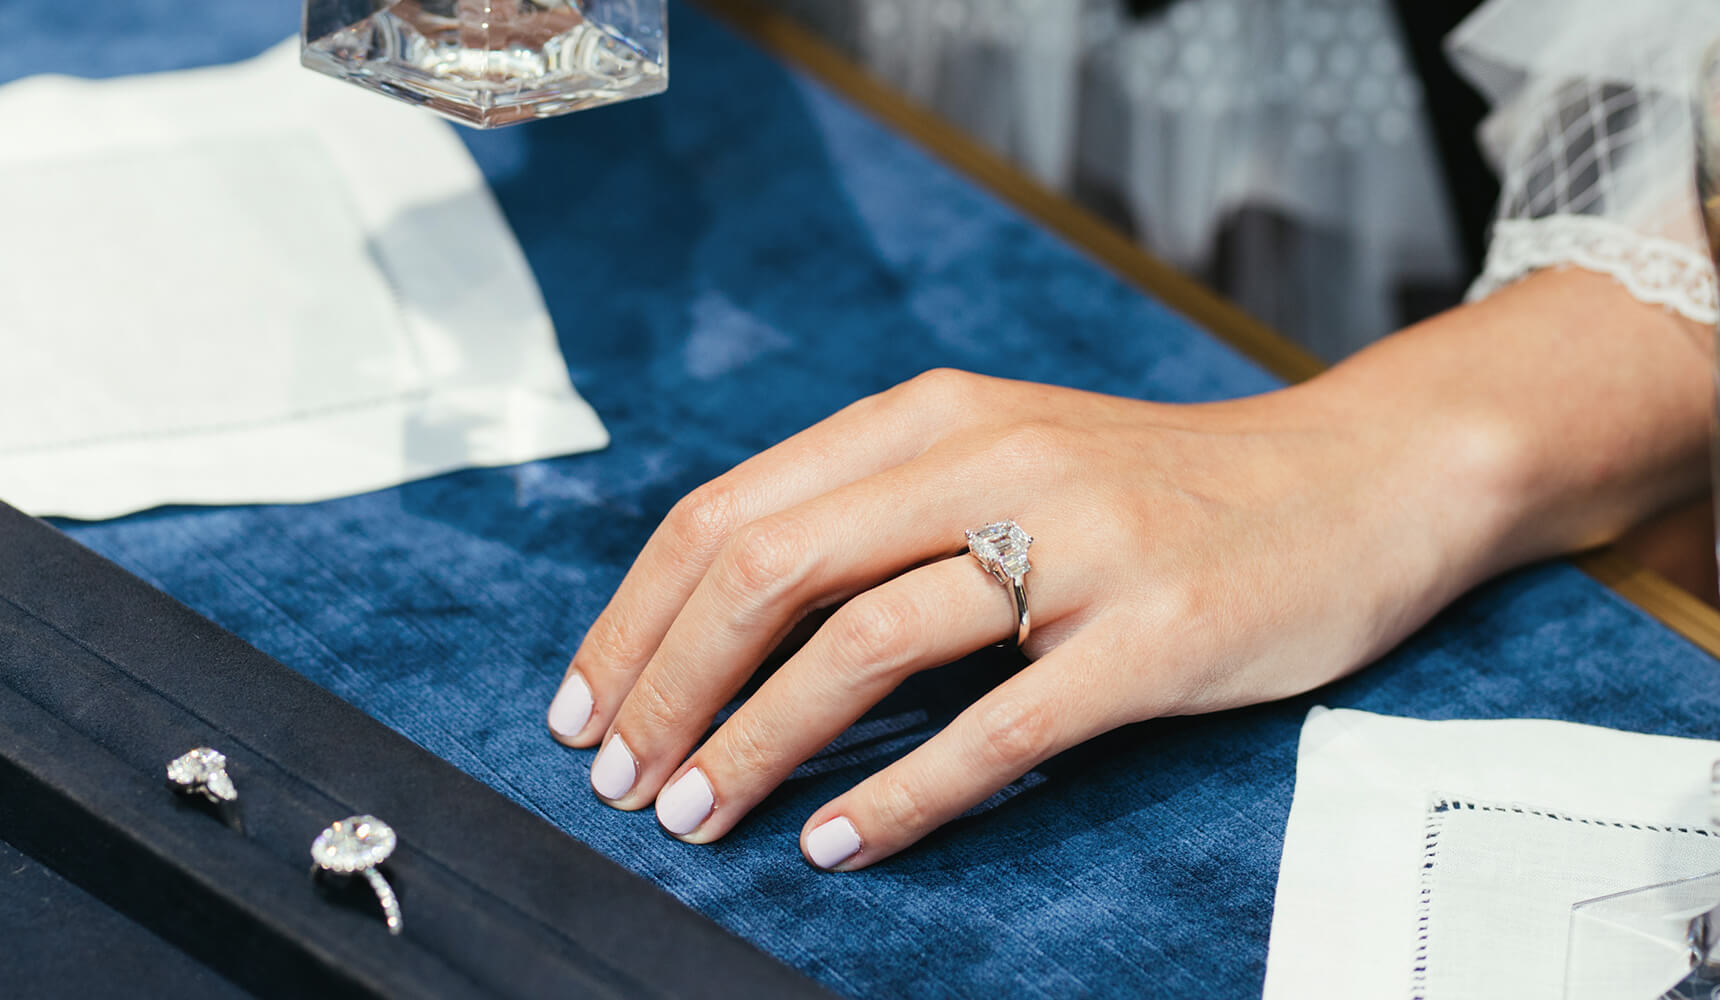 Woman's hand wearing a Harry Winston Classic Winston Emerald-Cut Diamond Engagement Ring next to a tray of Harry Winston Diamond Engagement Rings